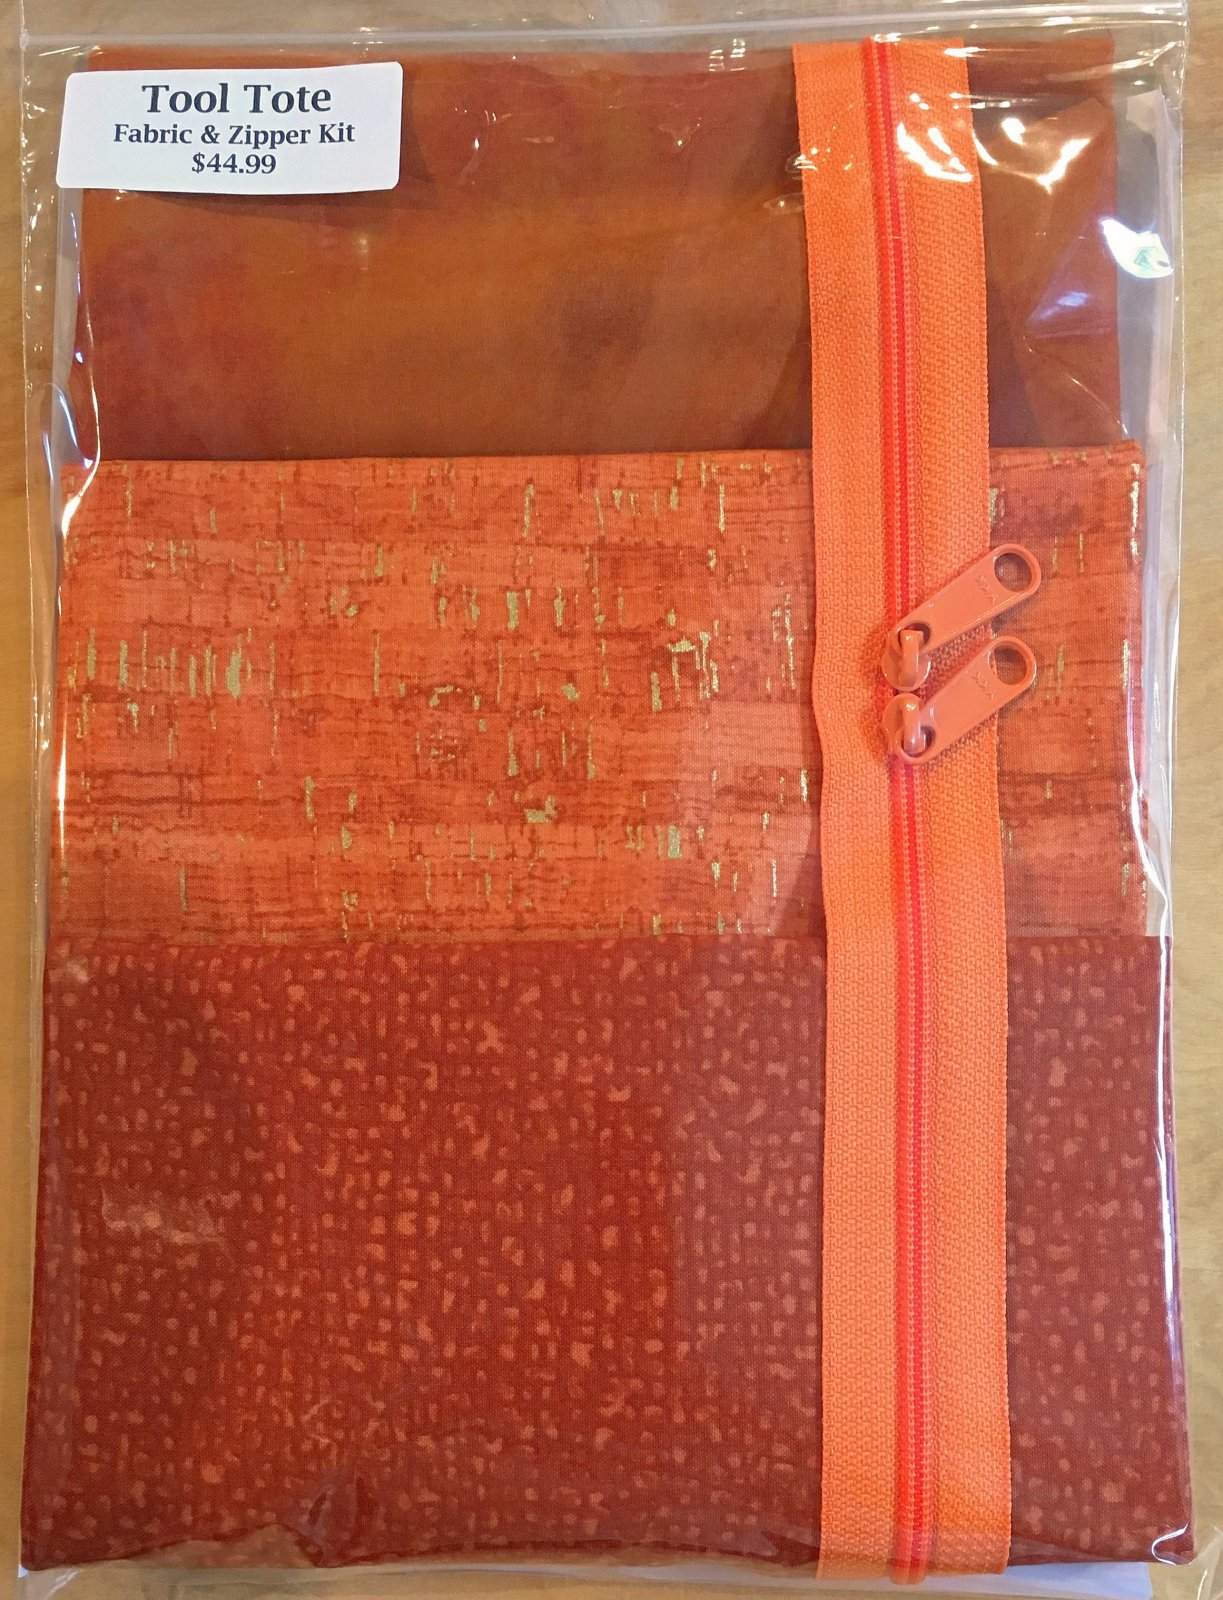 Tool Tote Orange Trio - Fabric & Zipper Kit ONLY